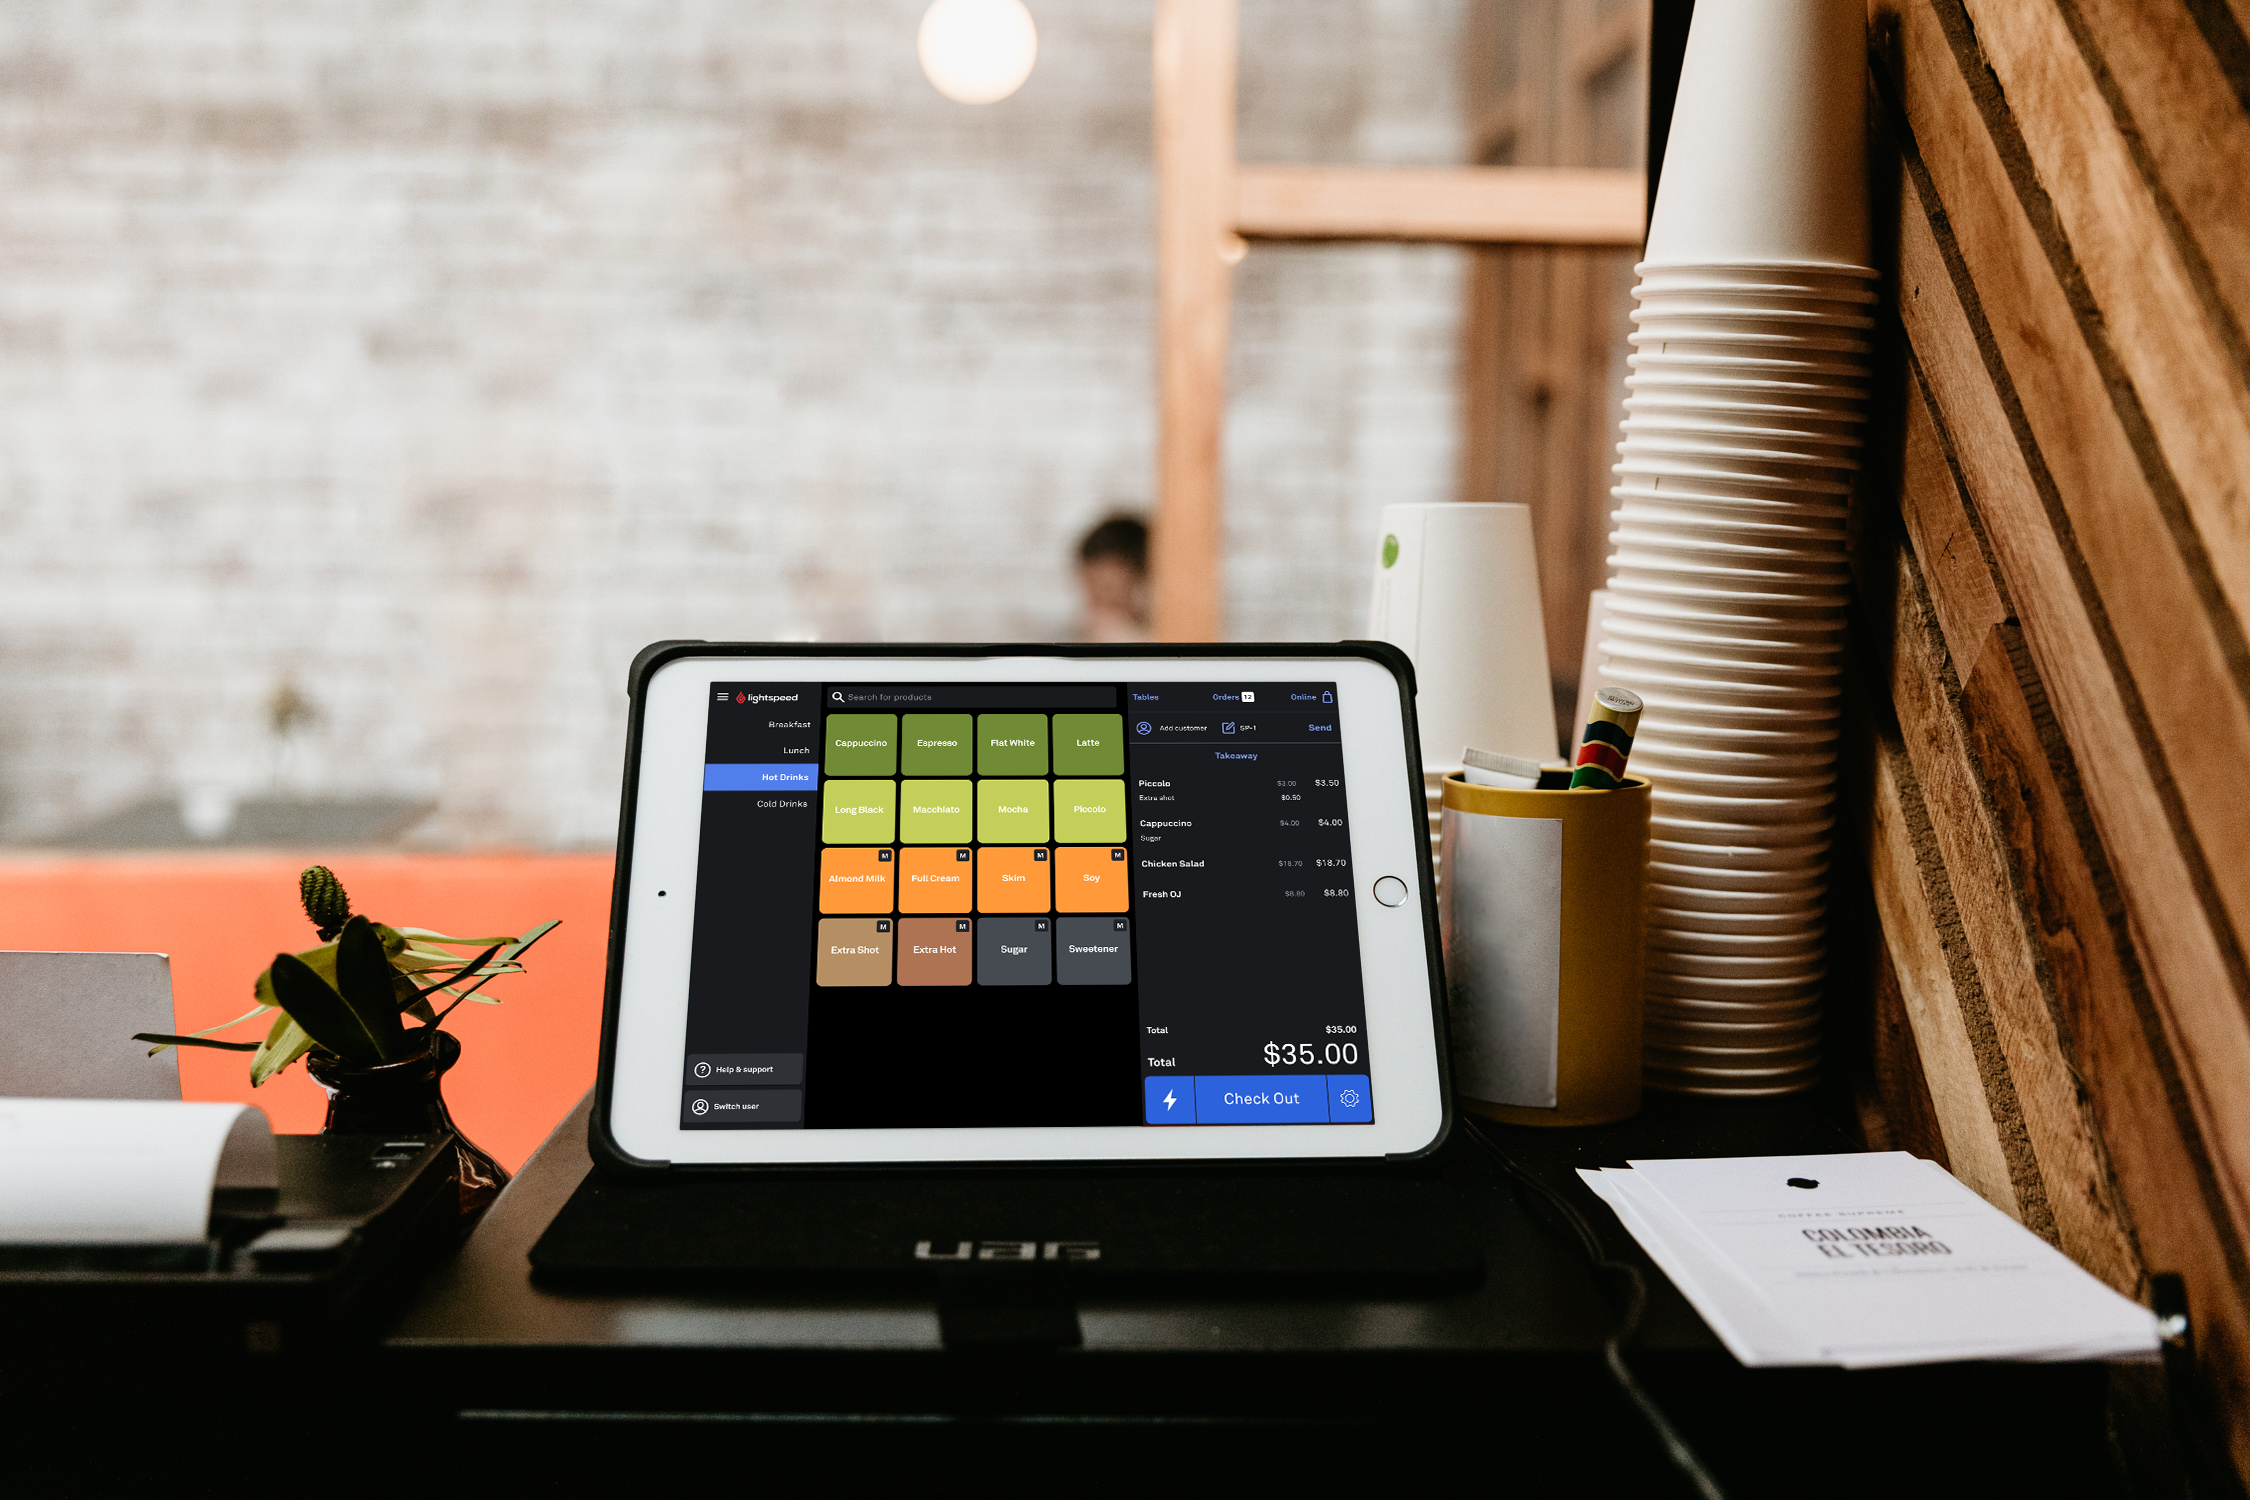 Lightspeed POS screenshot: Built for restaurants, bars, cafes, bakeries, breweries and everything in-between!